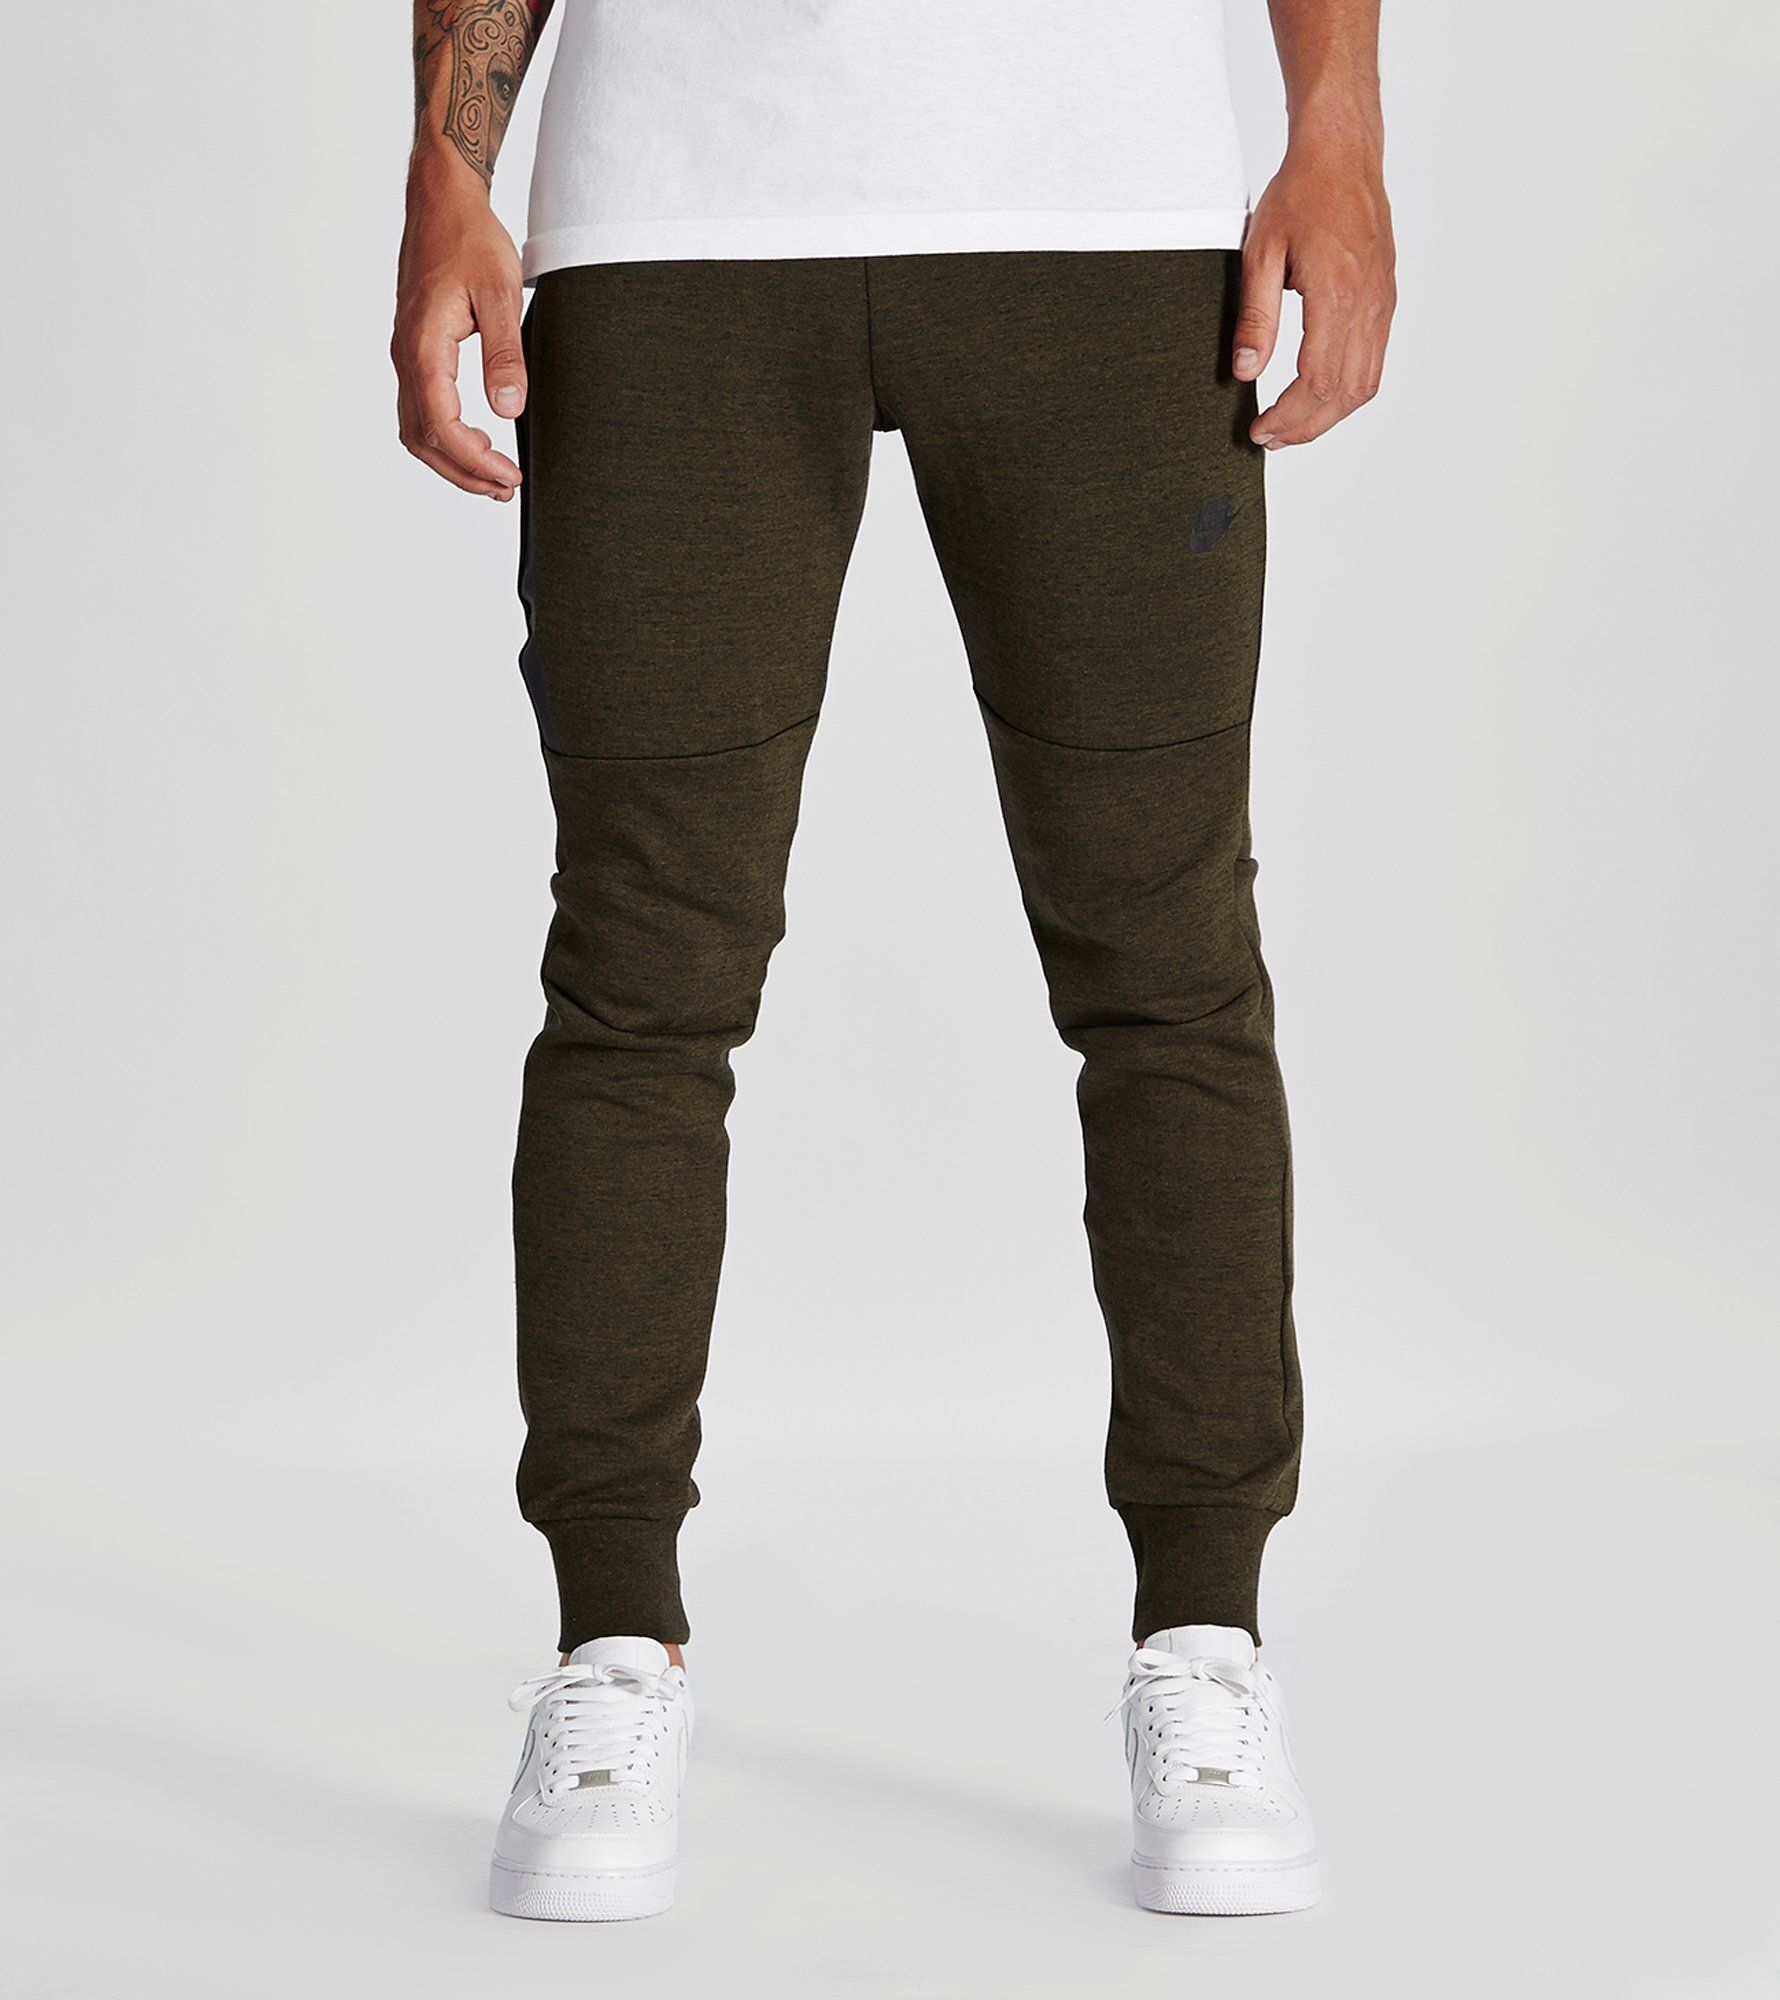 Nike Tech Fleece Pants  dcebd206c